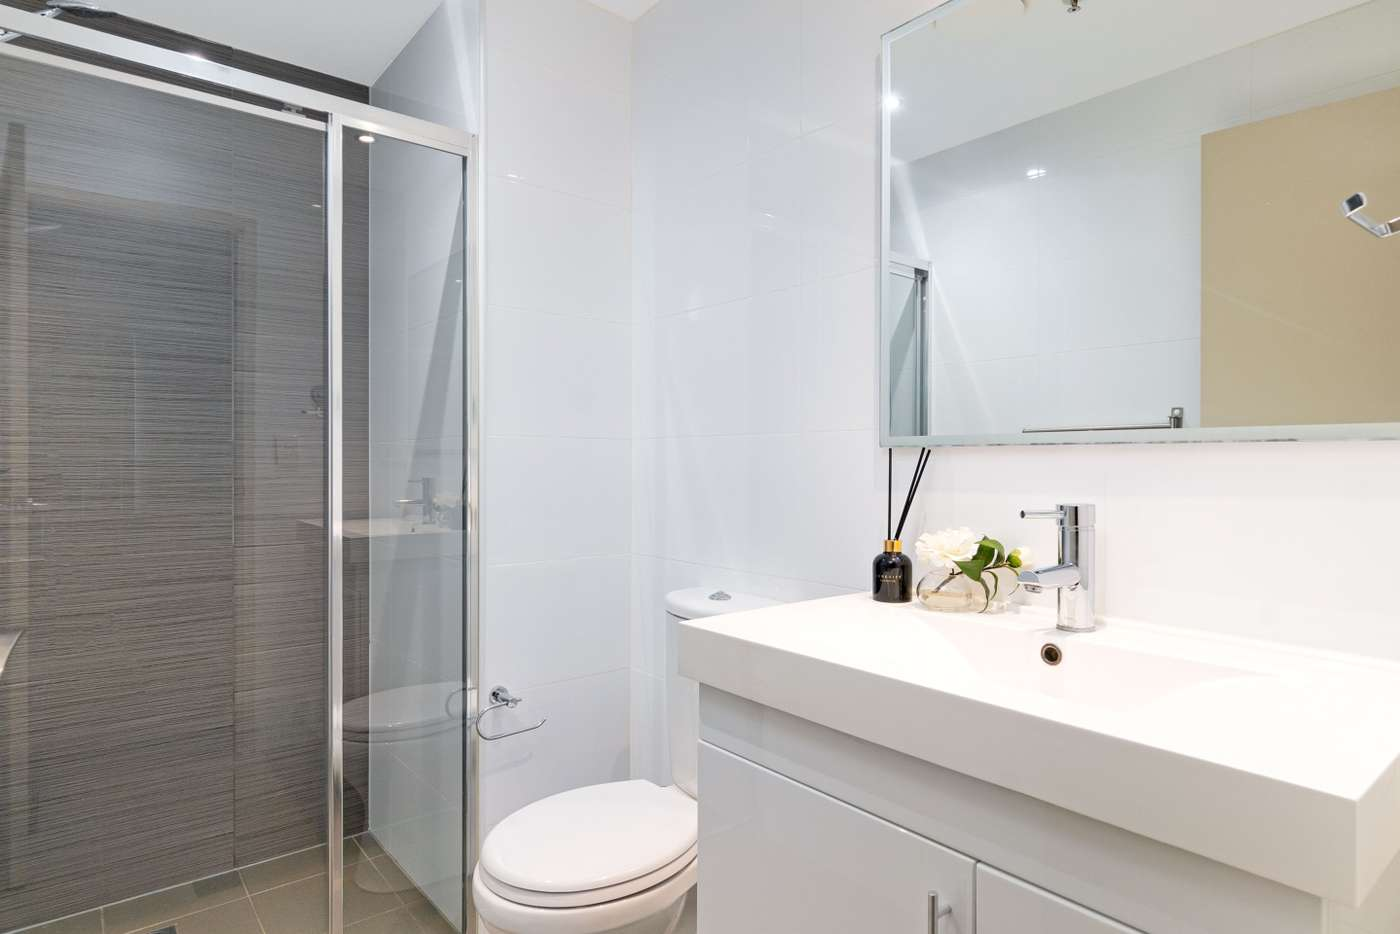 Sixth view of Homely apartment listing, 16/459-463 Church Street, Parramatta NSW 2150